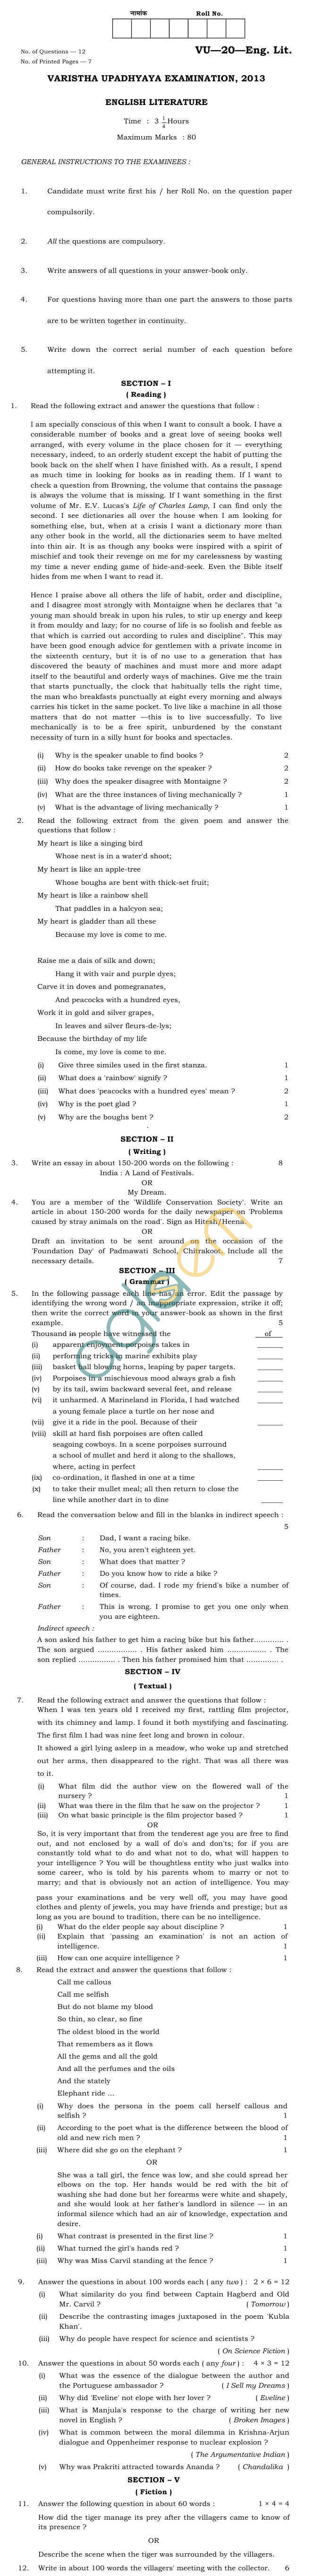 Rajasthan Board V Upadhyay English Lit Question Paper 2013